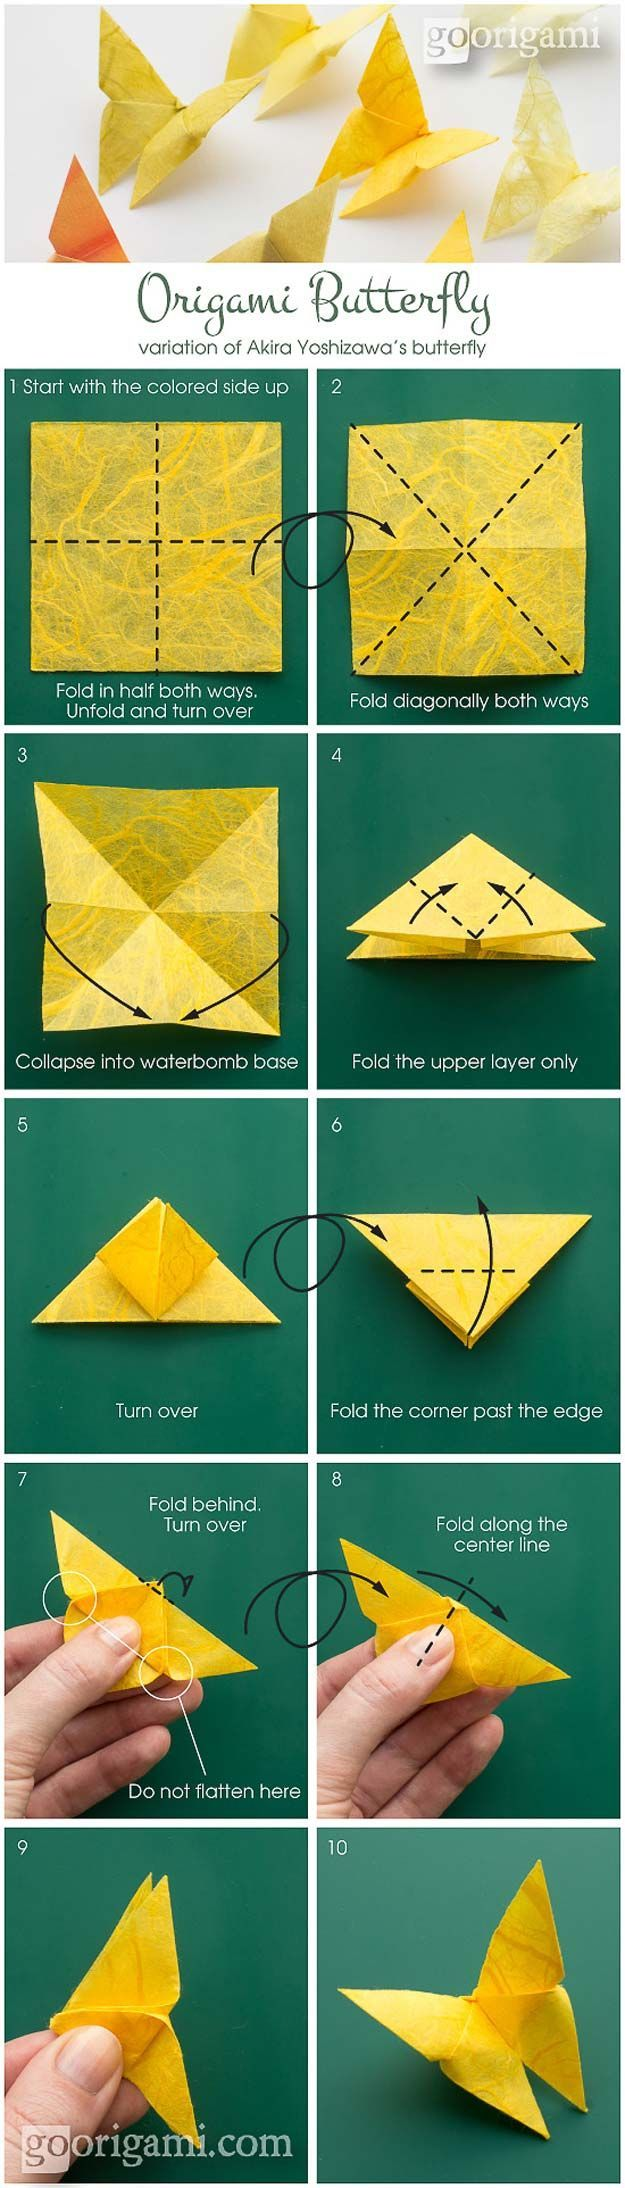 Best Origami Tutorials - Origami Butterfly - Easy DIY Origami Tutorial Projects for With Instructions for Flowers, Dog, Gift Box, Star, Owl, Buttlerfly, Heart and Bookmark, Animals - Fun Paper Crafts for Teens, Kids and Adults http://diyprojectsforteens.com/best-origami-tutorials #DIYArtsandCrafts